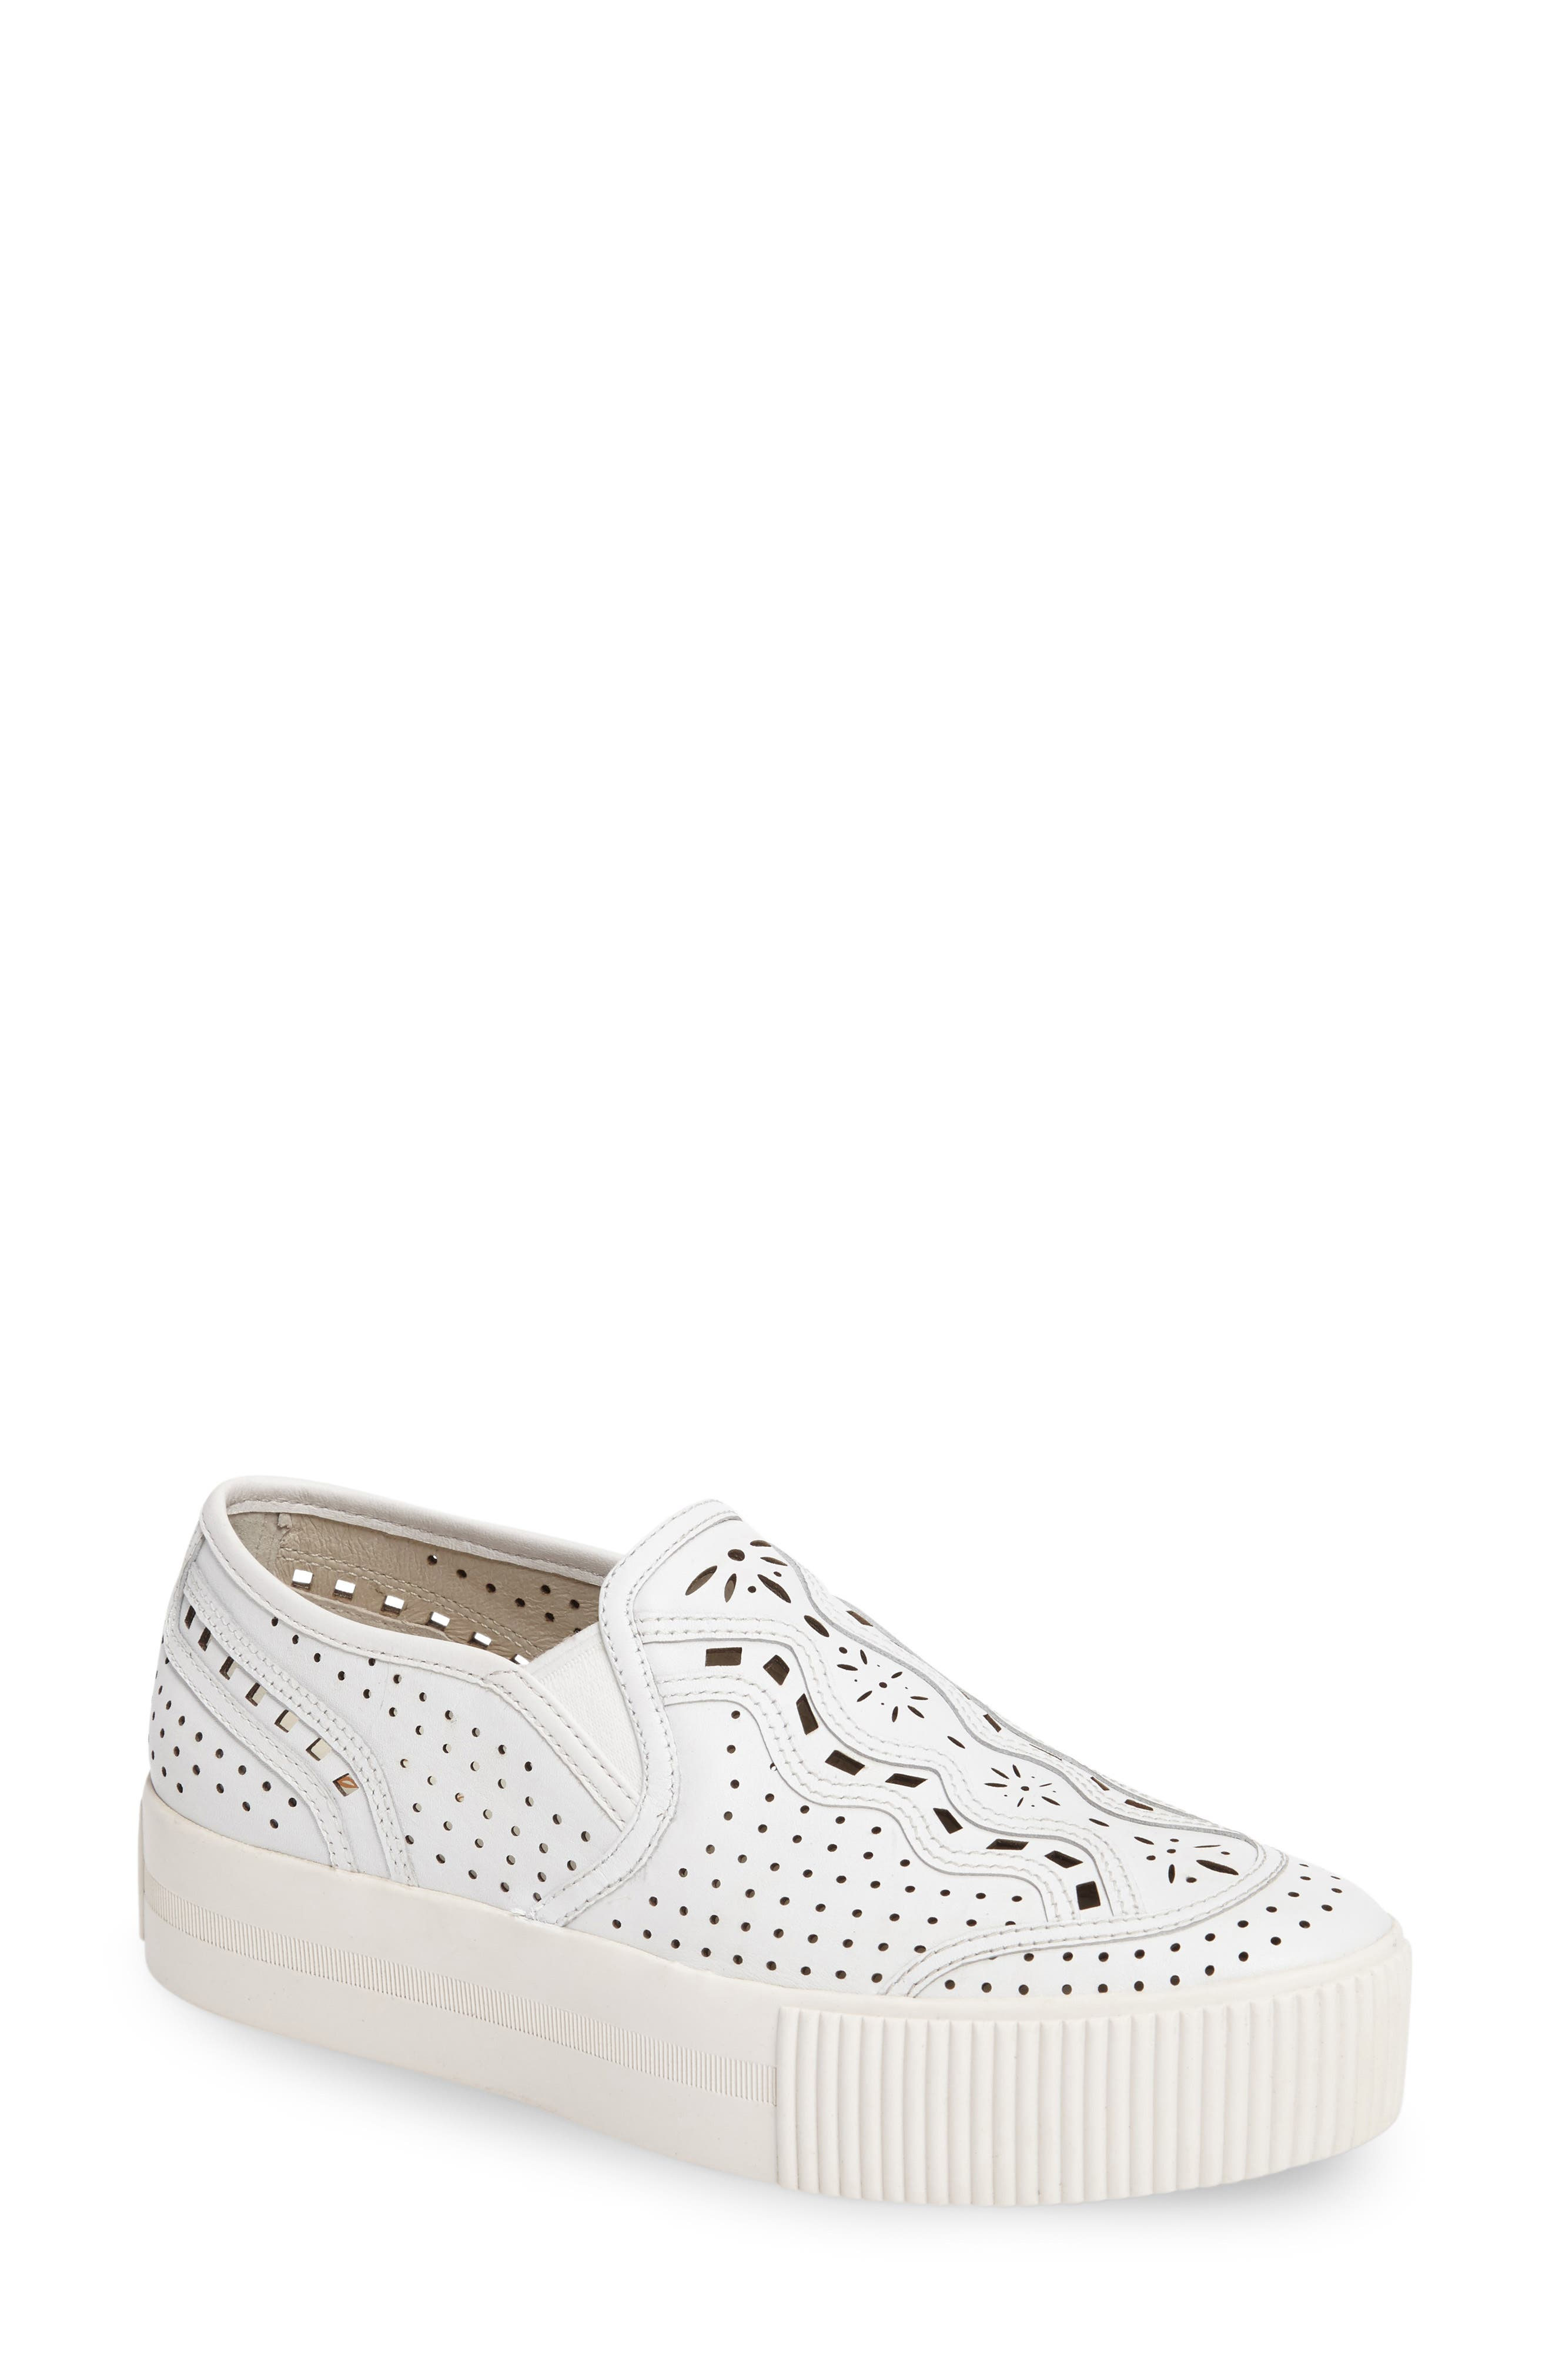 Main Image - Ash Kingston Perforated Platform Sneaker (Women)